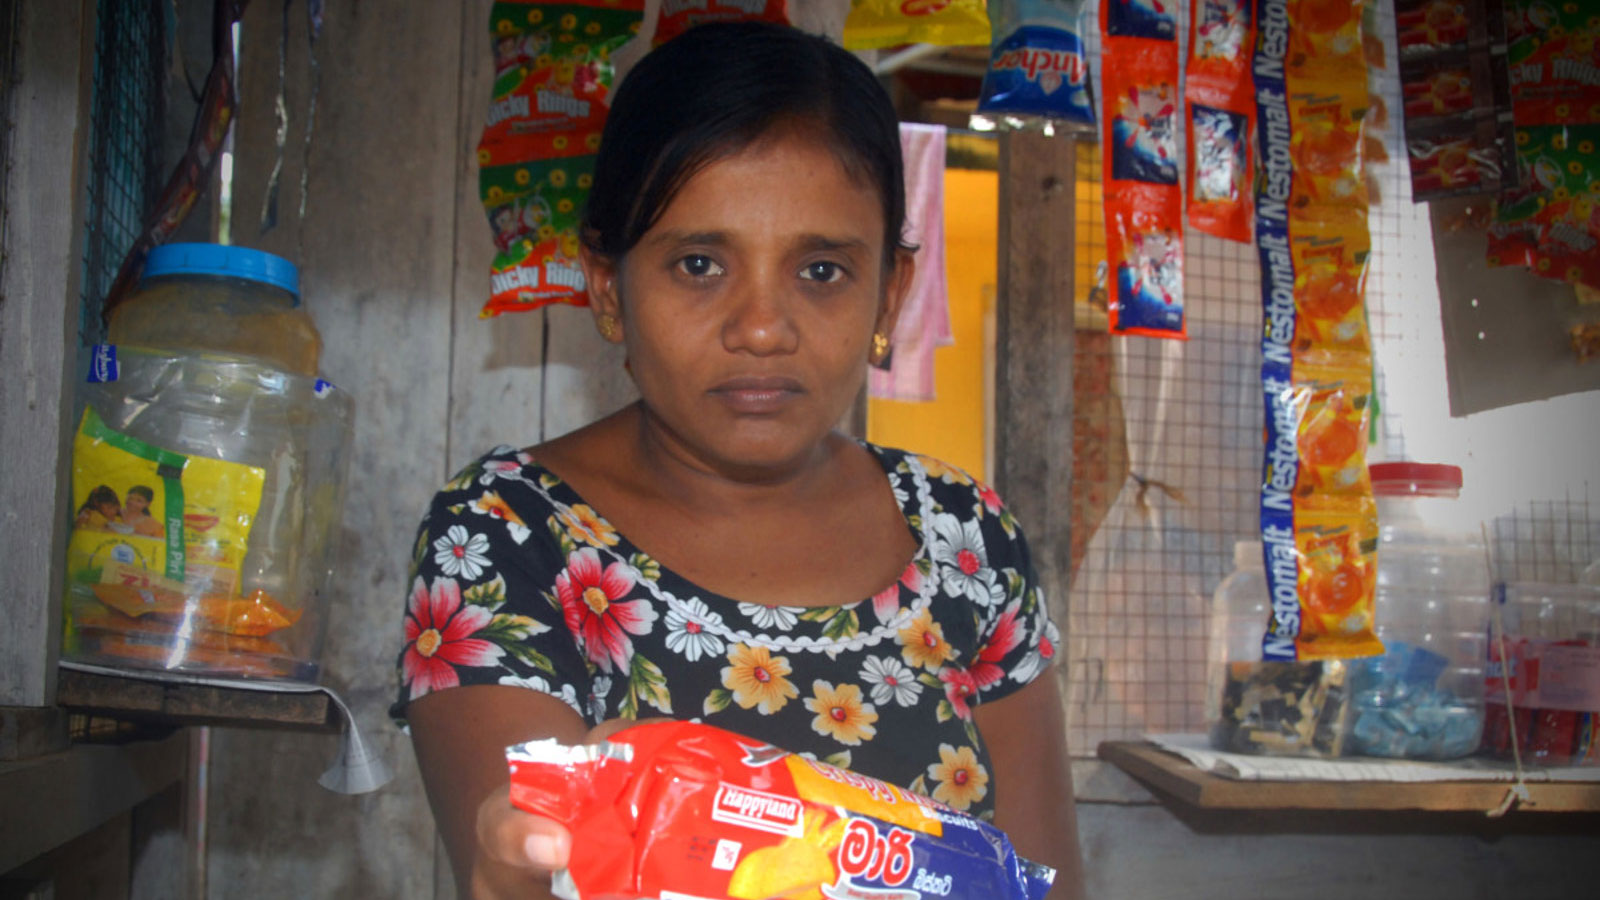 Sri Lanka | Growing employment opportunities for people with disabilities